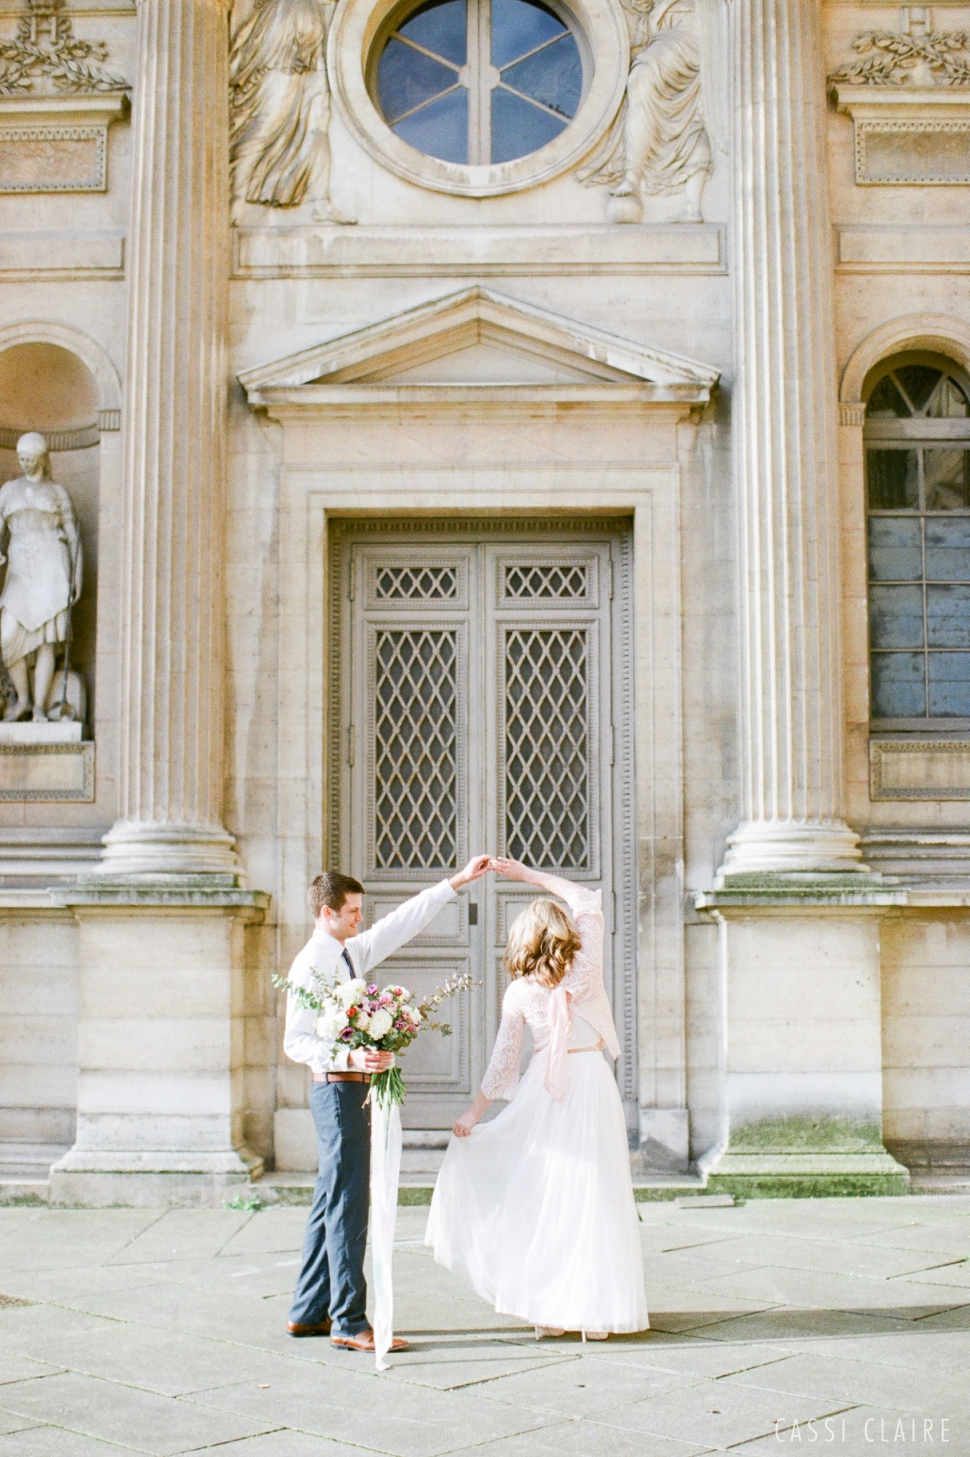 Paris-France-Wedding_CassiClaire_37.jpg